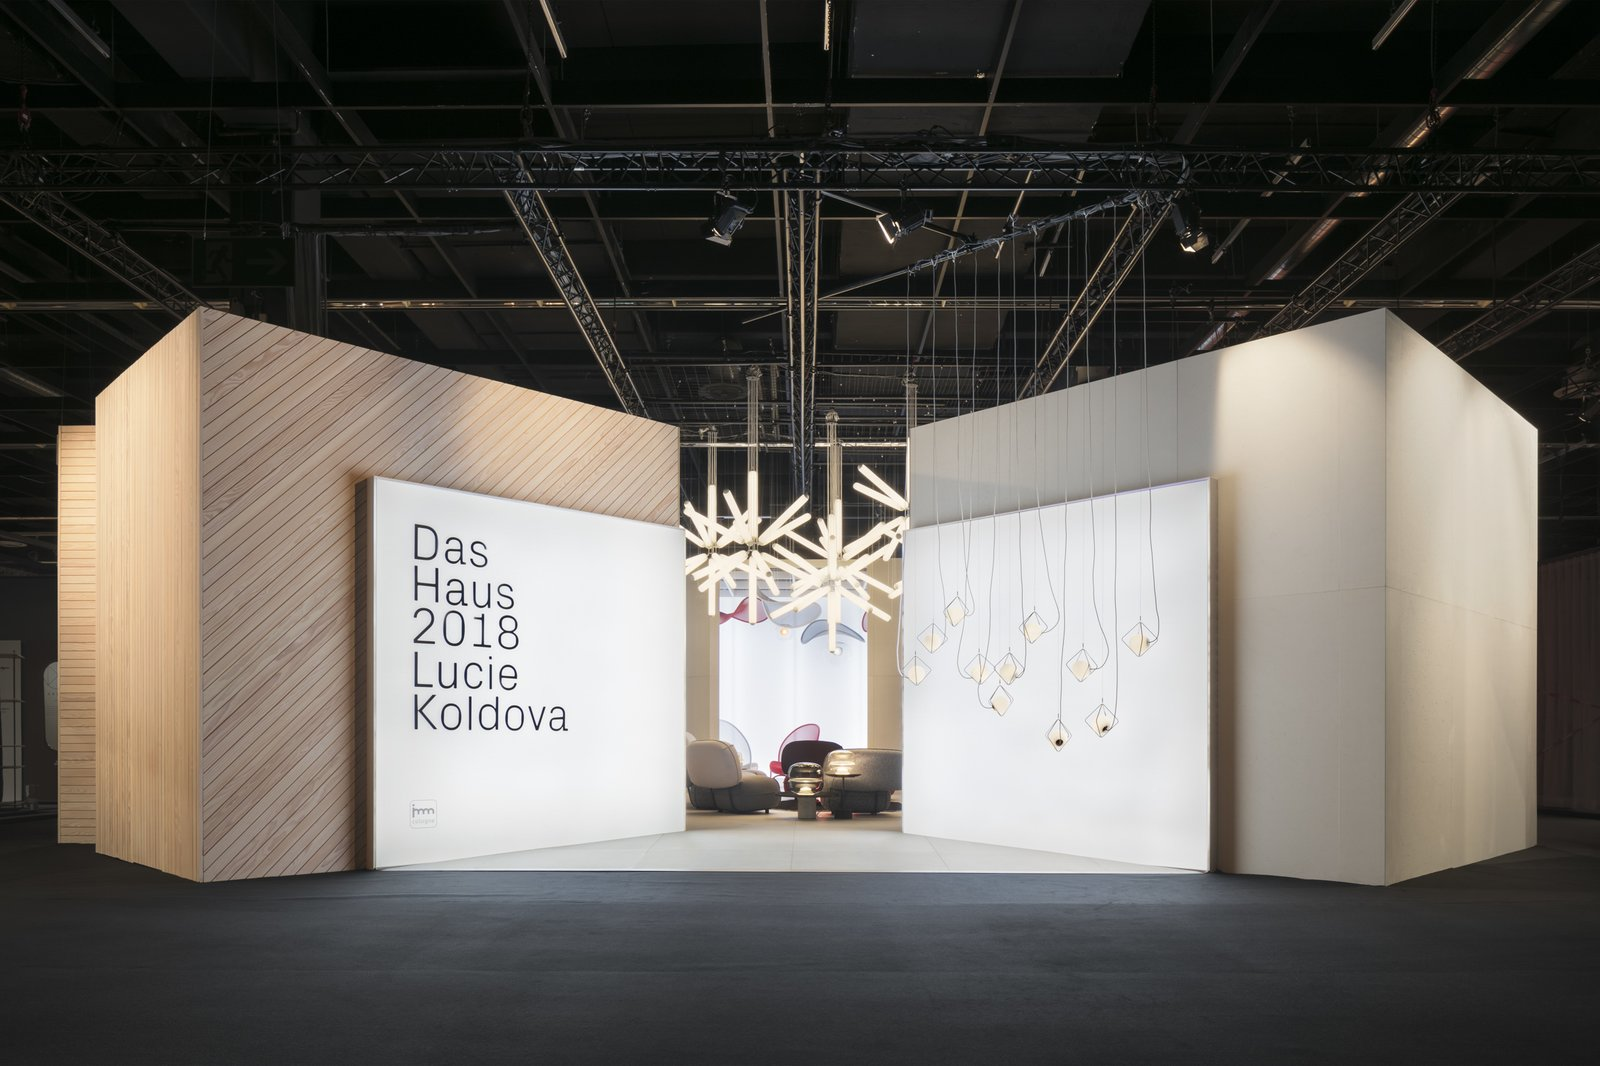 Photo 2 of 9 in Q&A: Lucie Koldova Talks About Her Das Haus Concept For imm Cologne